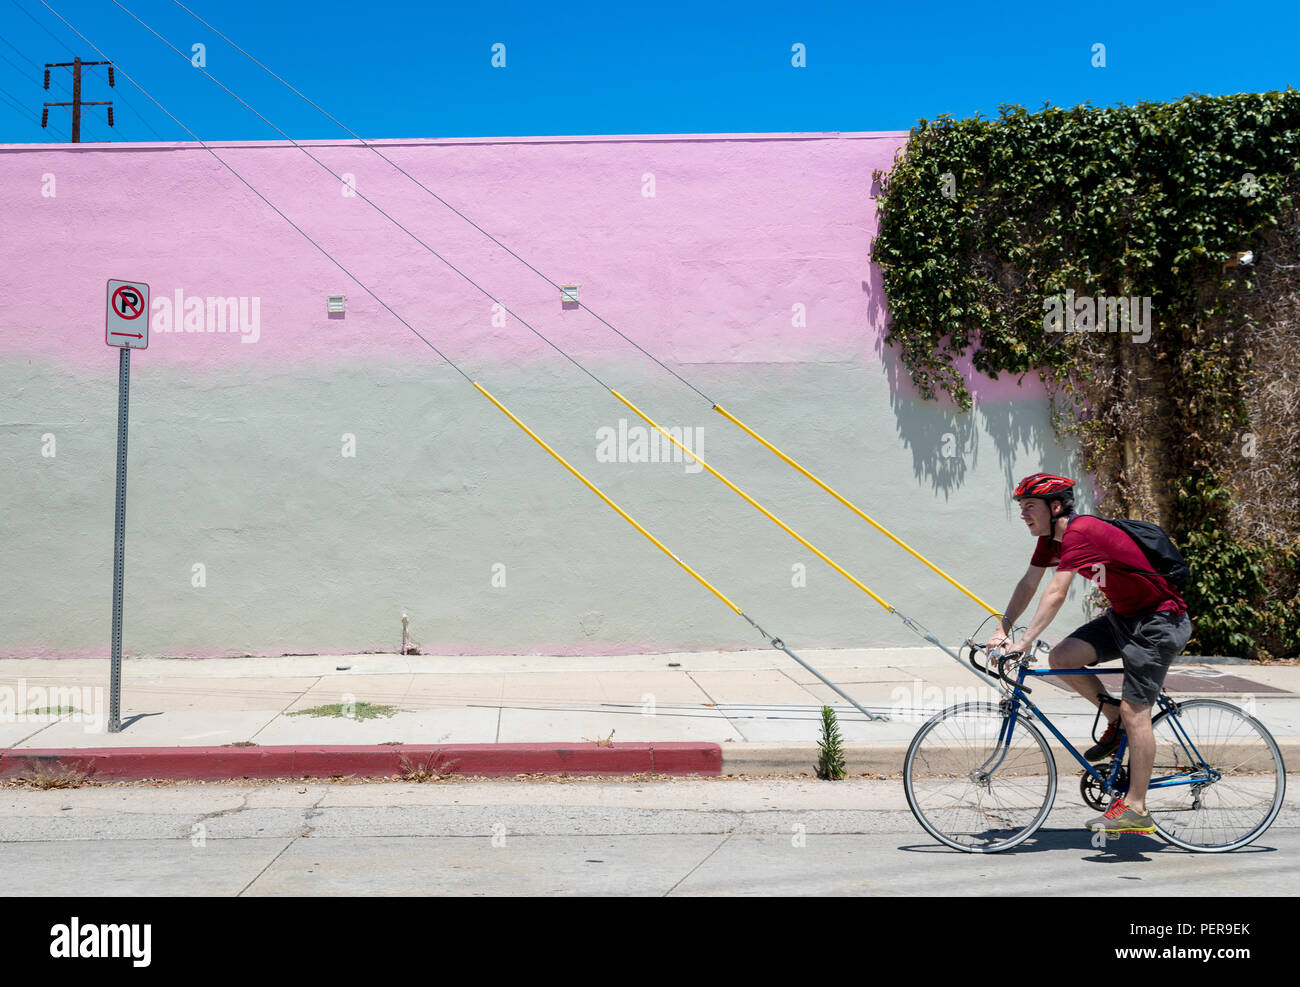 Cyclist in the Frogtown neighborhood of Los Angeles, California. - Stock Image